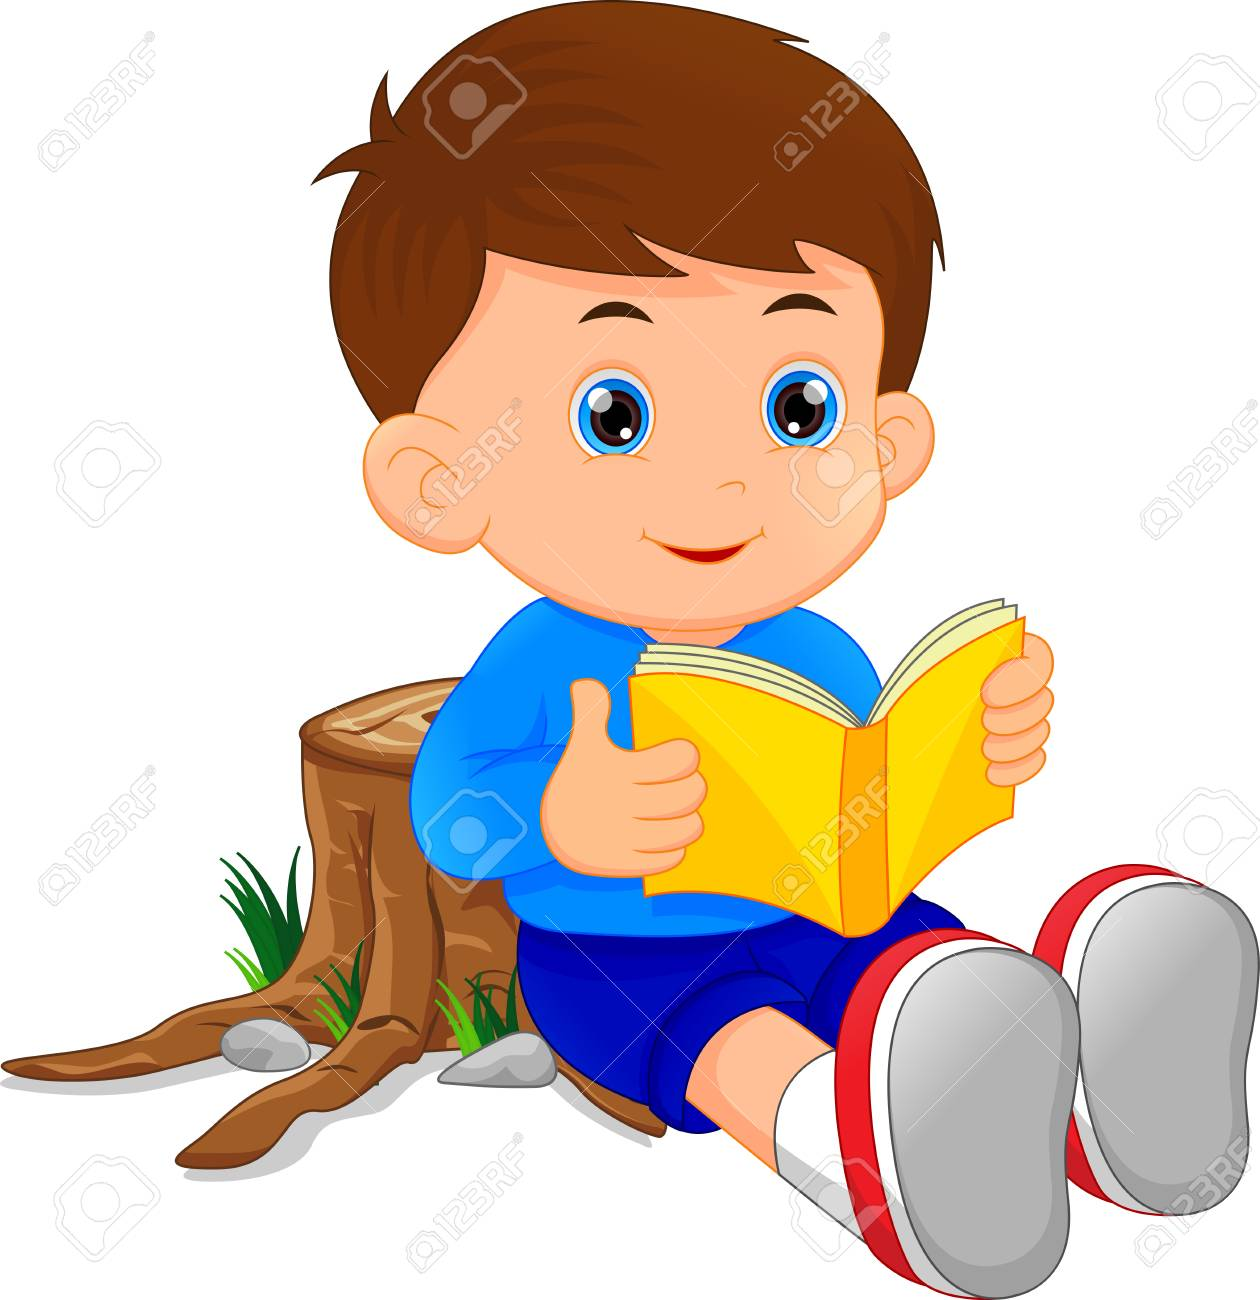 cute little boy reading book royalty free cliparts, vectors, and